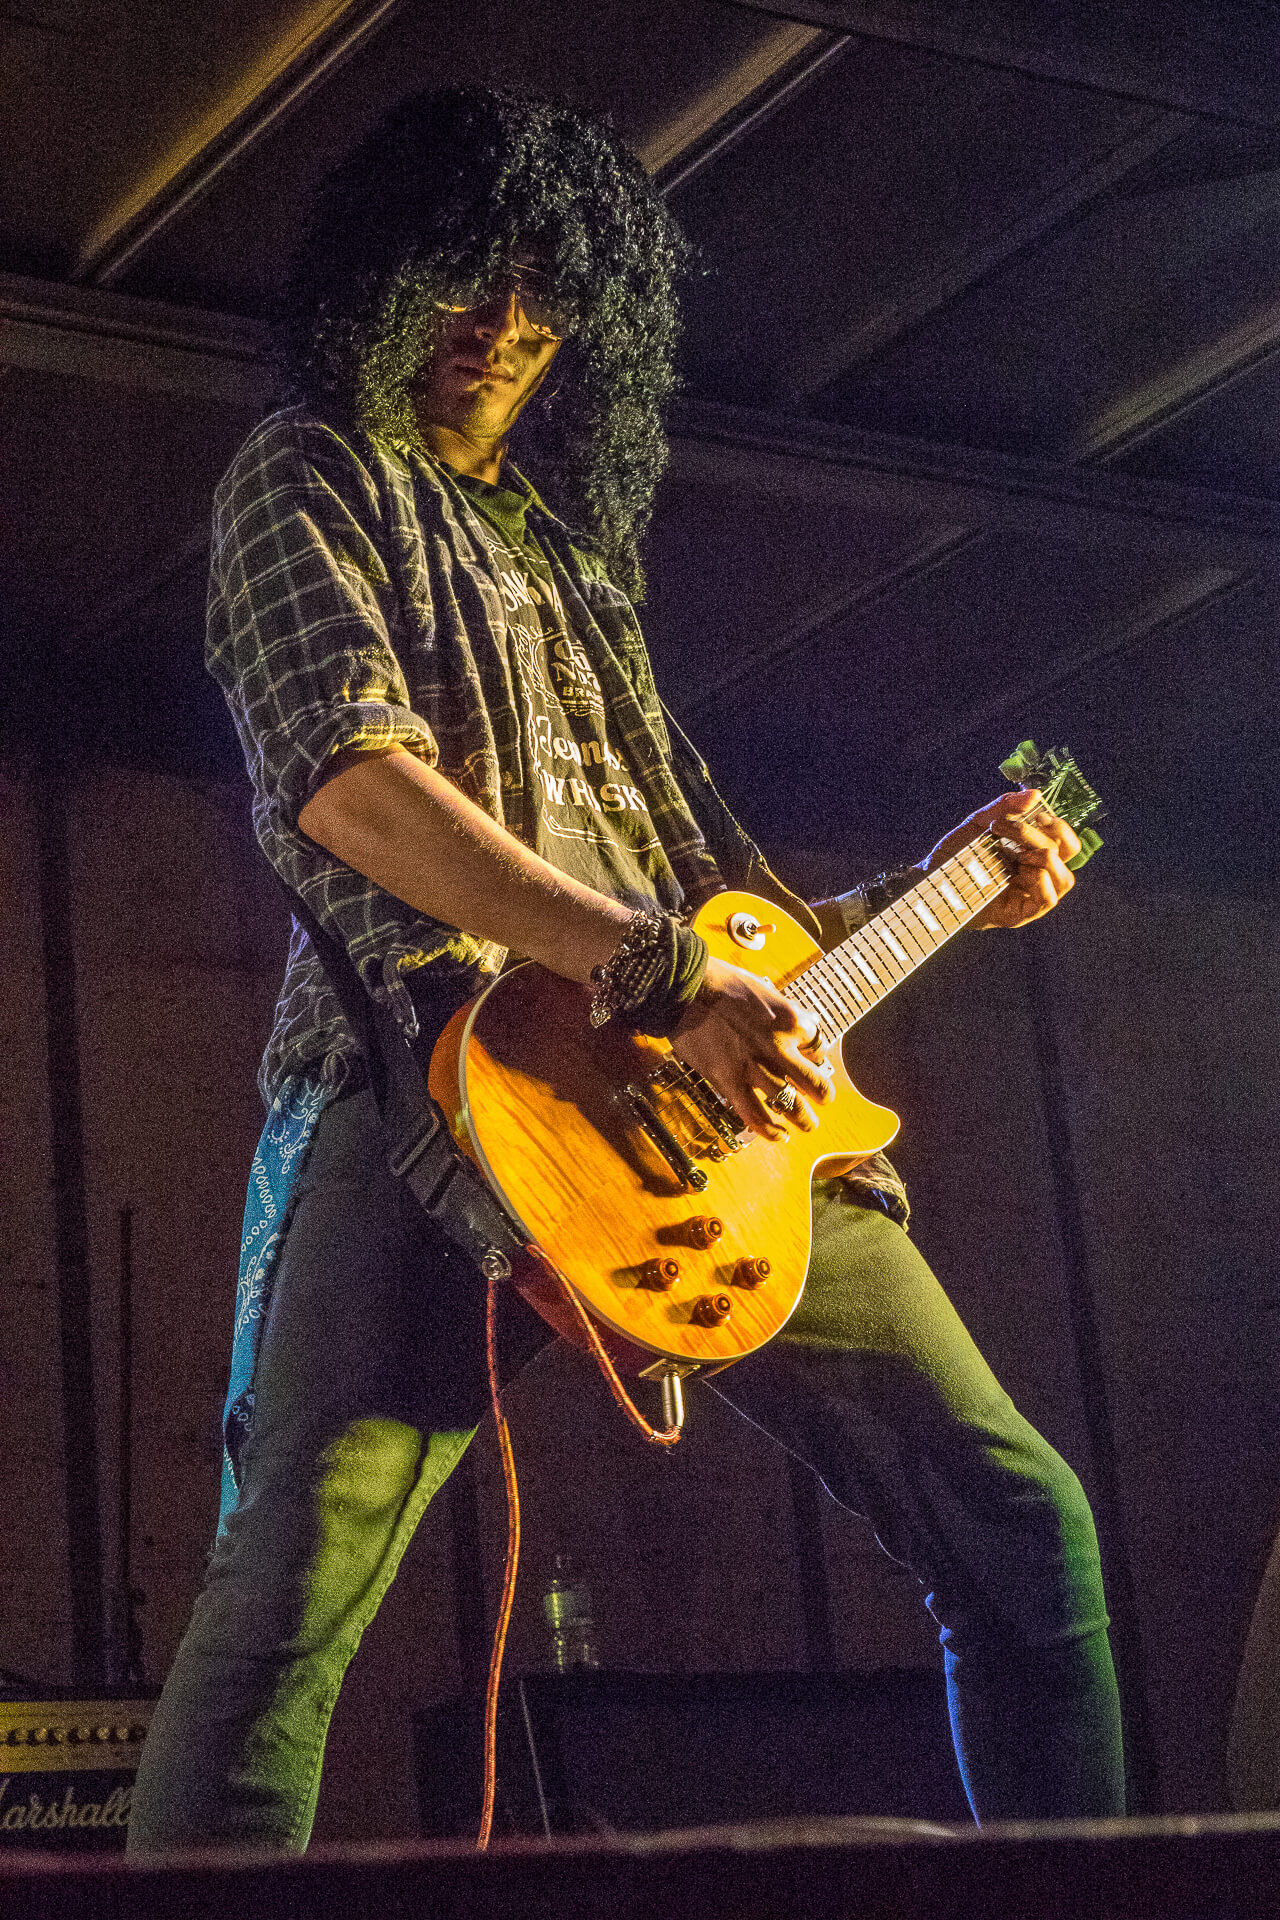 A colour photograph of the Slash lookalike from Guns 2 Roses stood in a classic Slash pose (looking directly at the camera and without his Top Hat) playing guitar on stage at The Drunken Monkey Festival 2017.